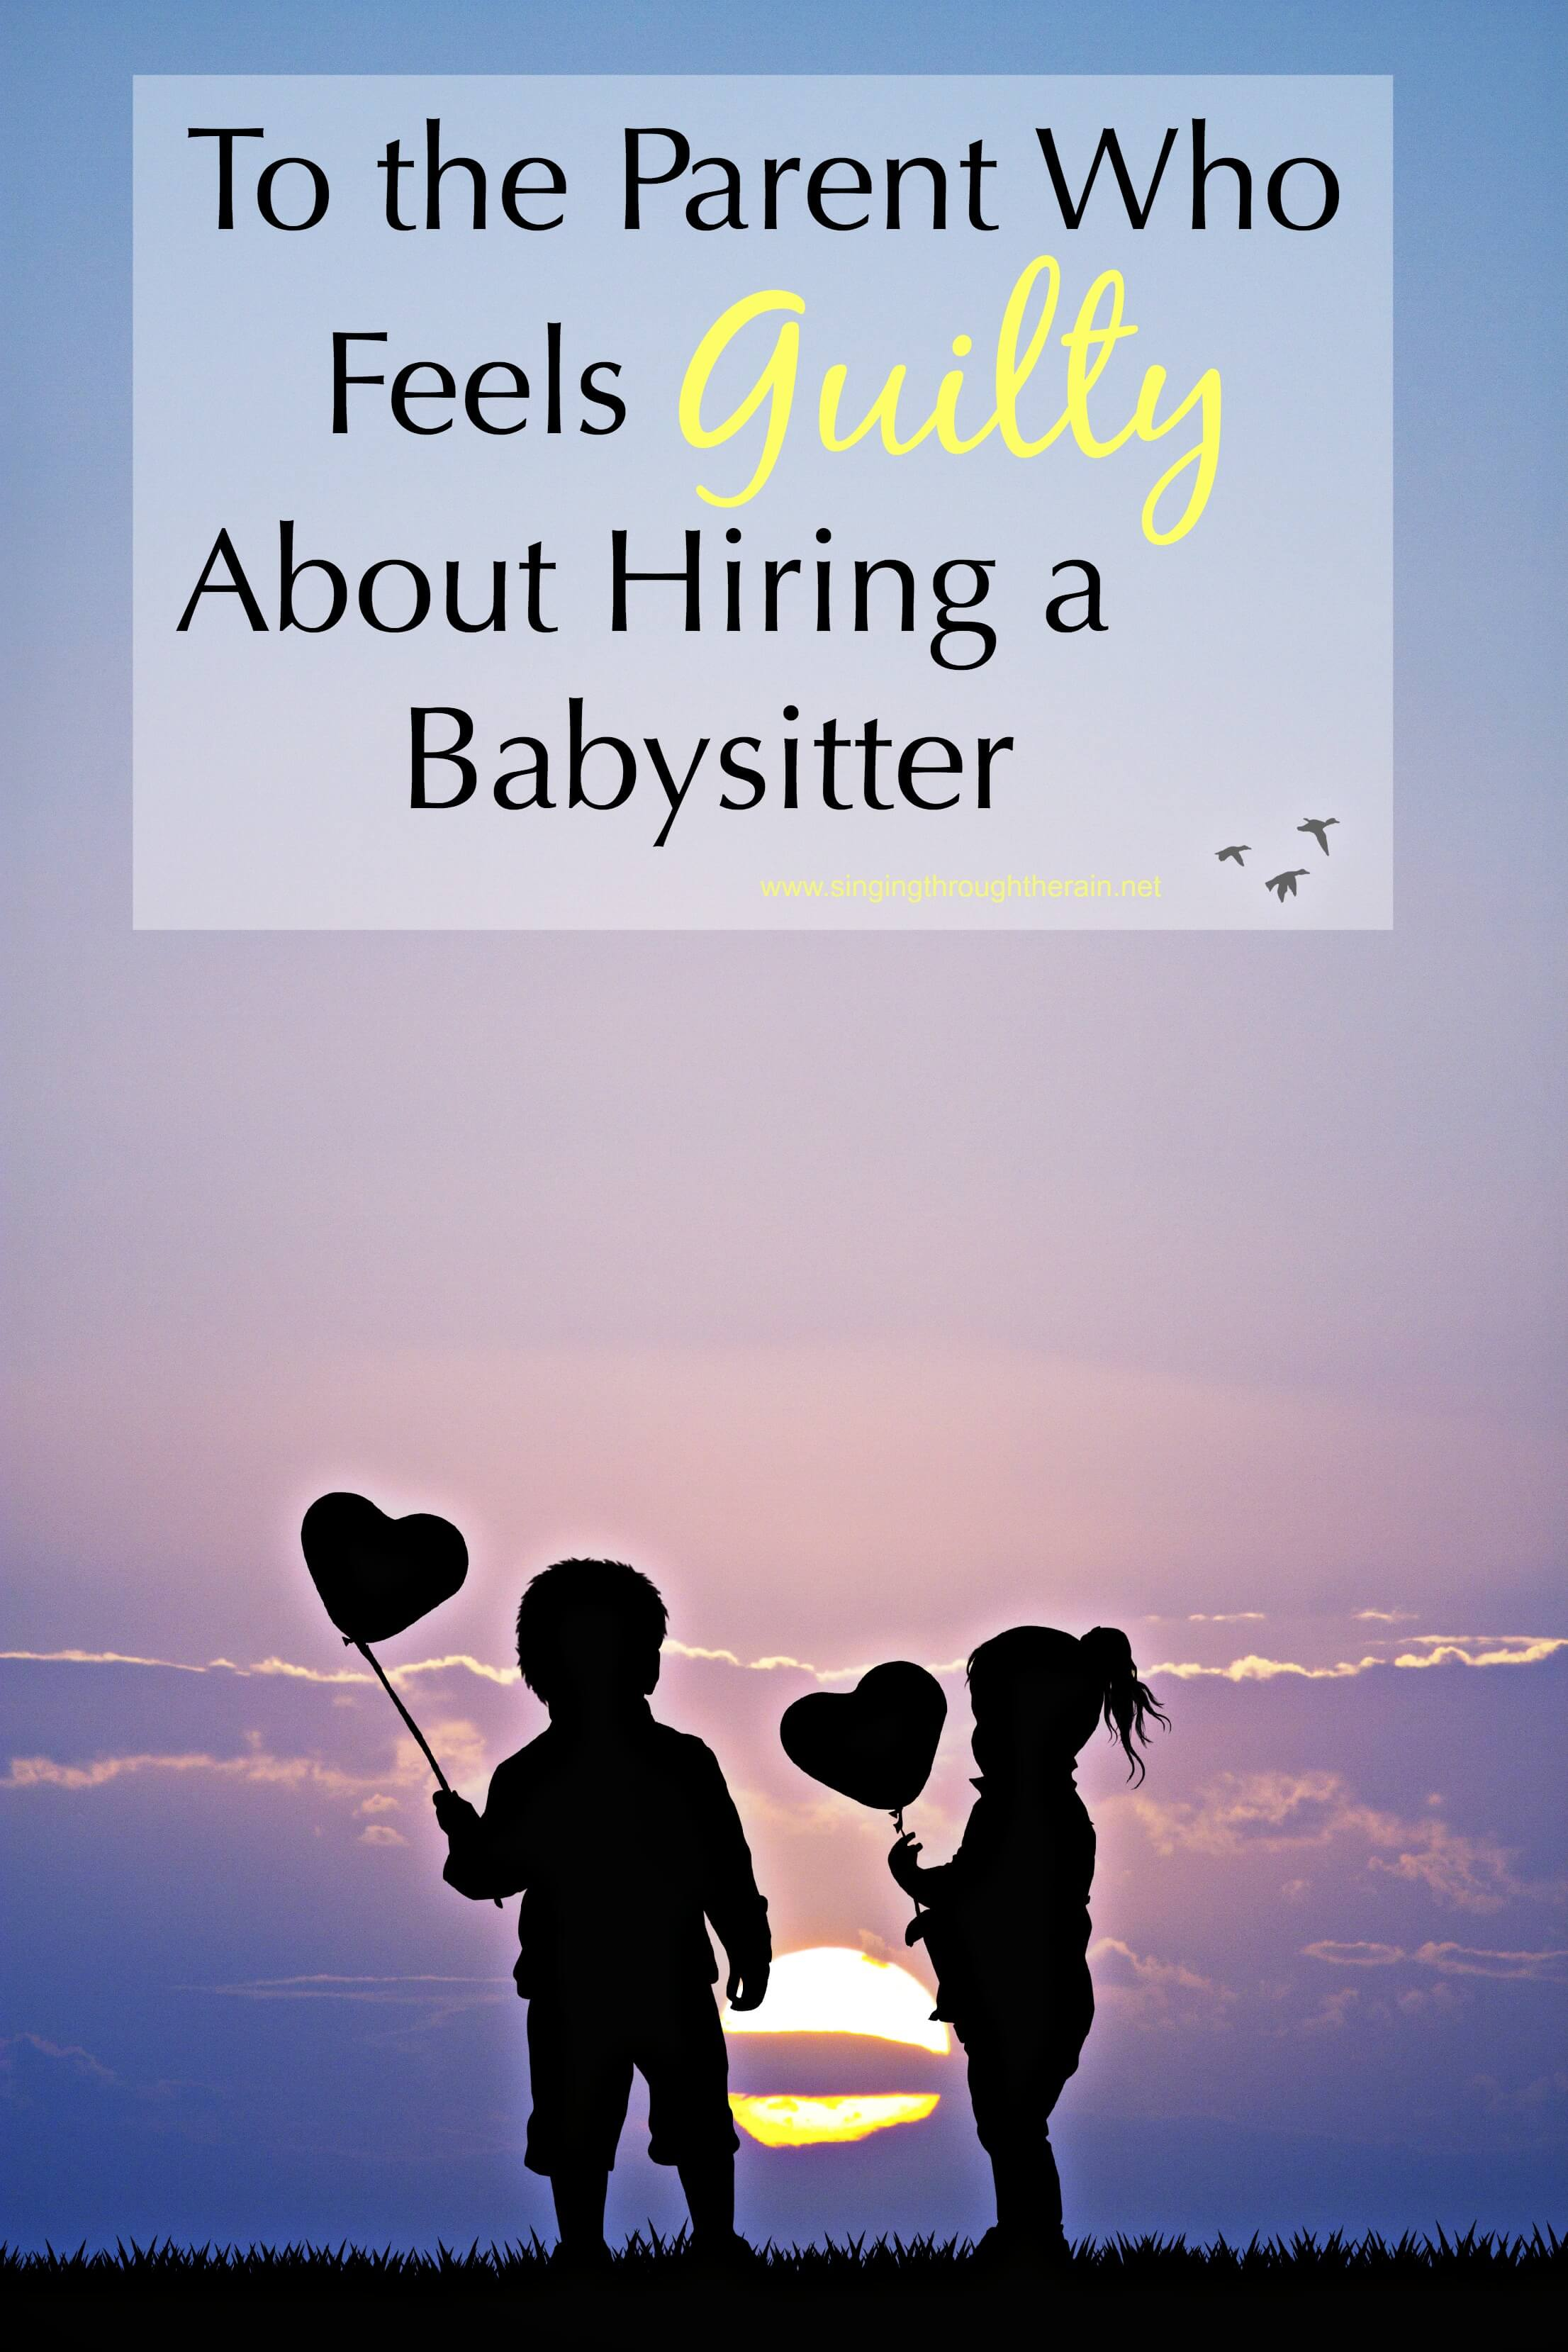 Guilty About Hiring a Babysitter